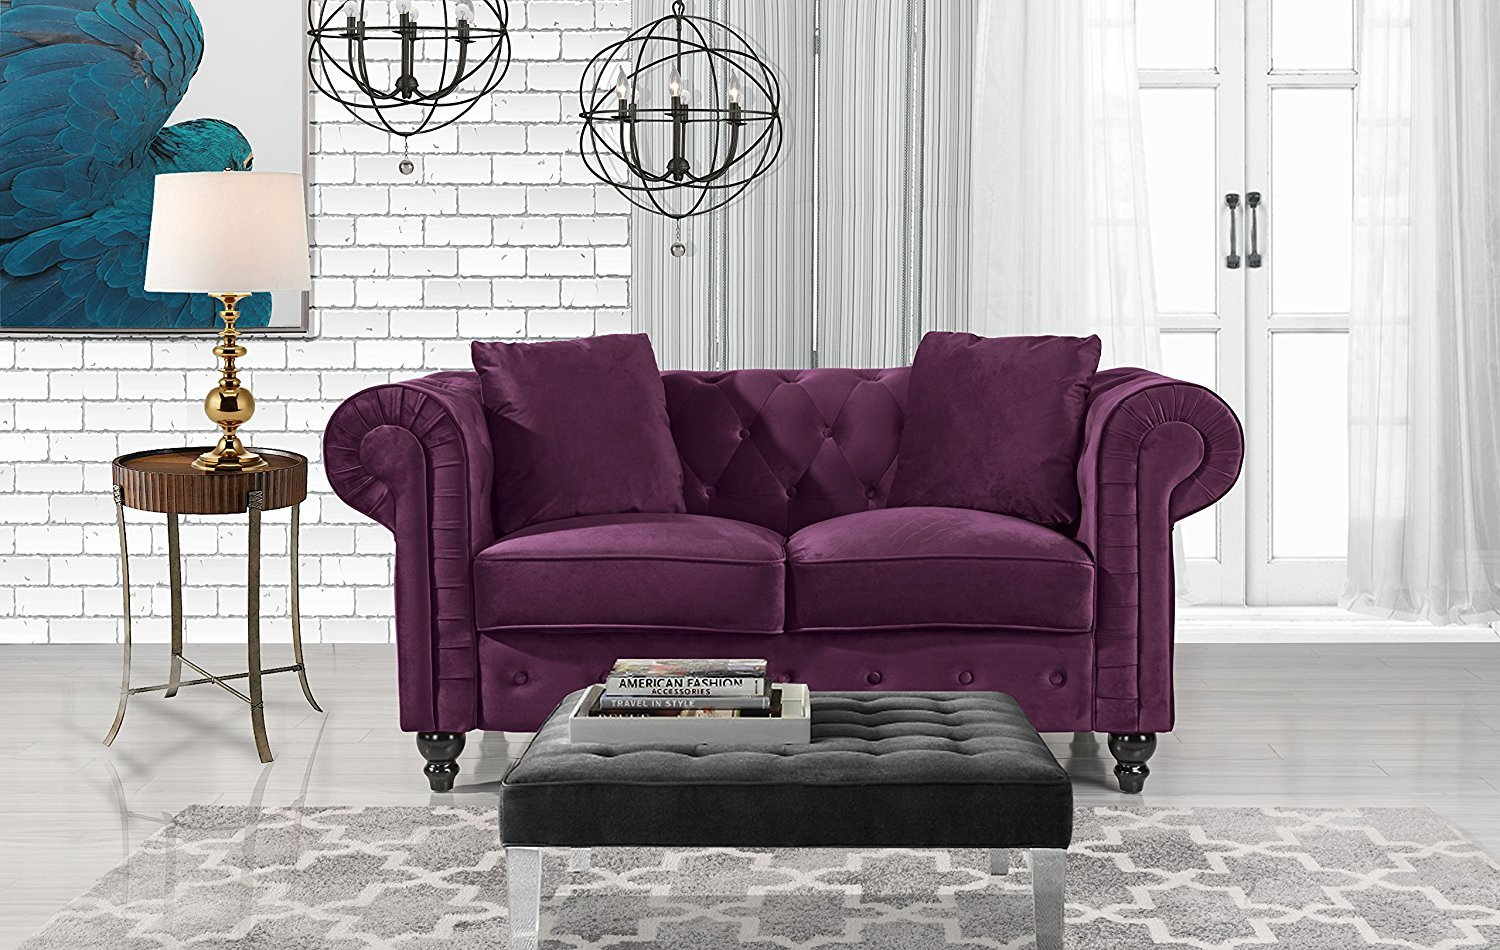 Modern tufted chesterfield scroll arm velvet love seat sofa with